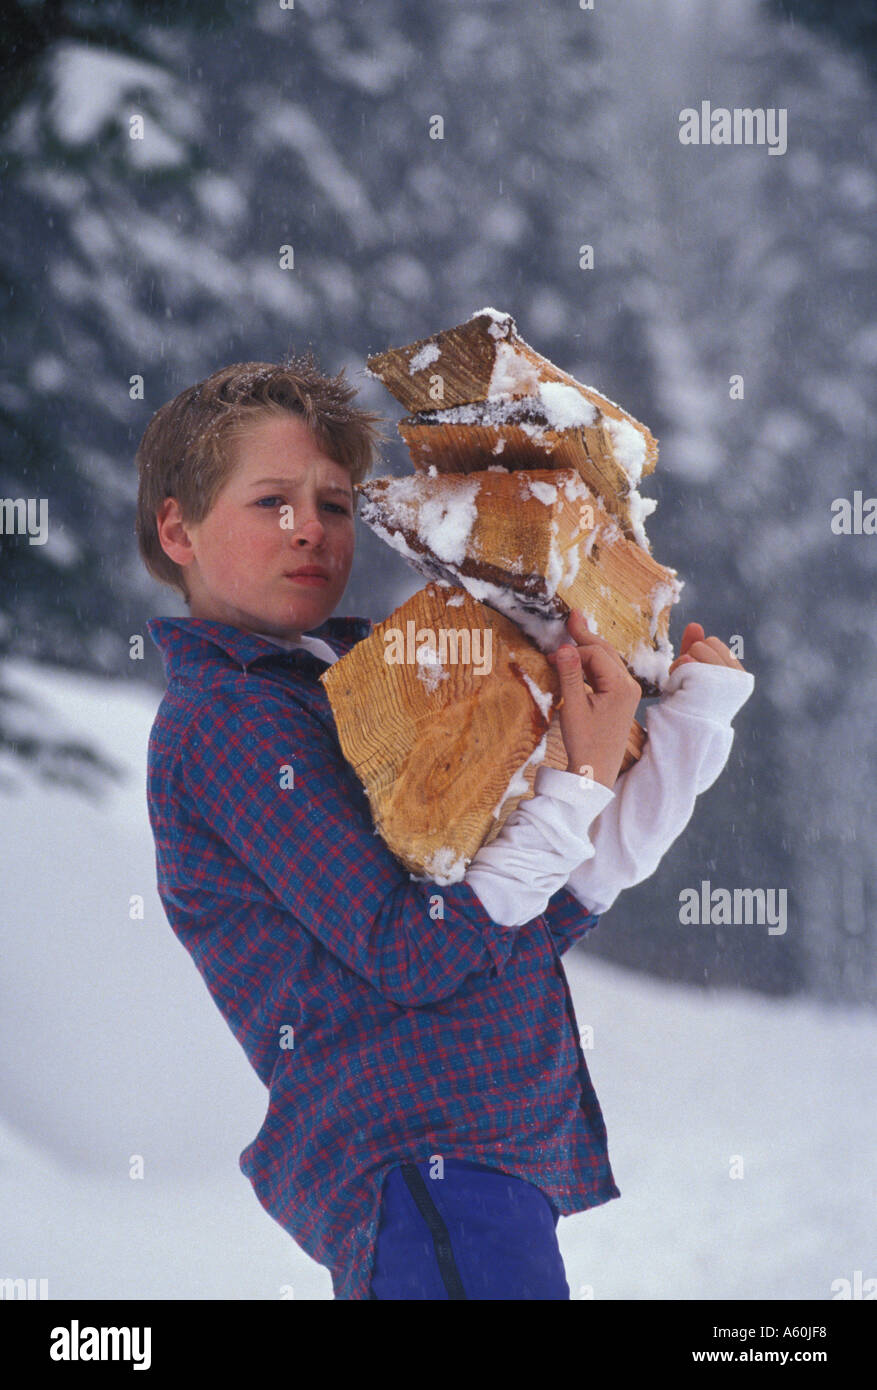 A twelve year old boy carries firewood during a snowstorm - Stock Image